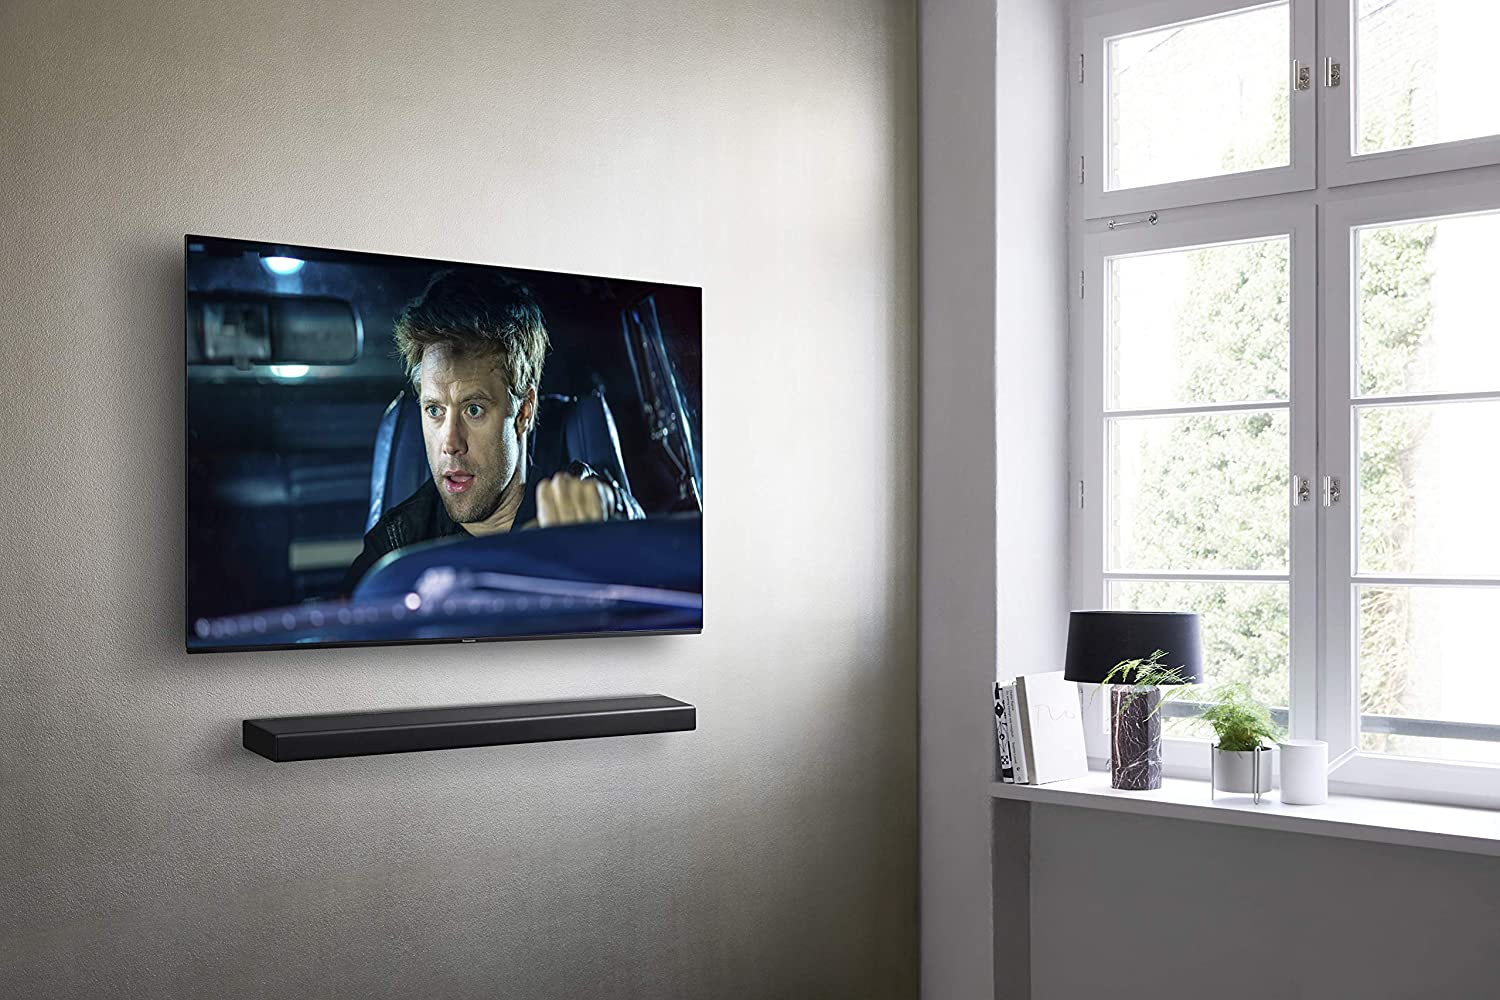 Panasonic SC-HTB188EGK - Barra de Sonido 188.18 All-In-One con